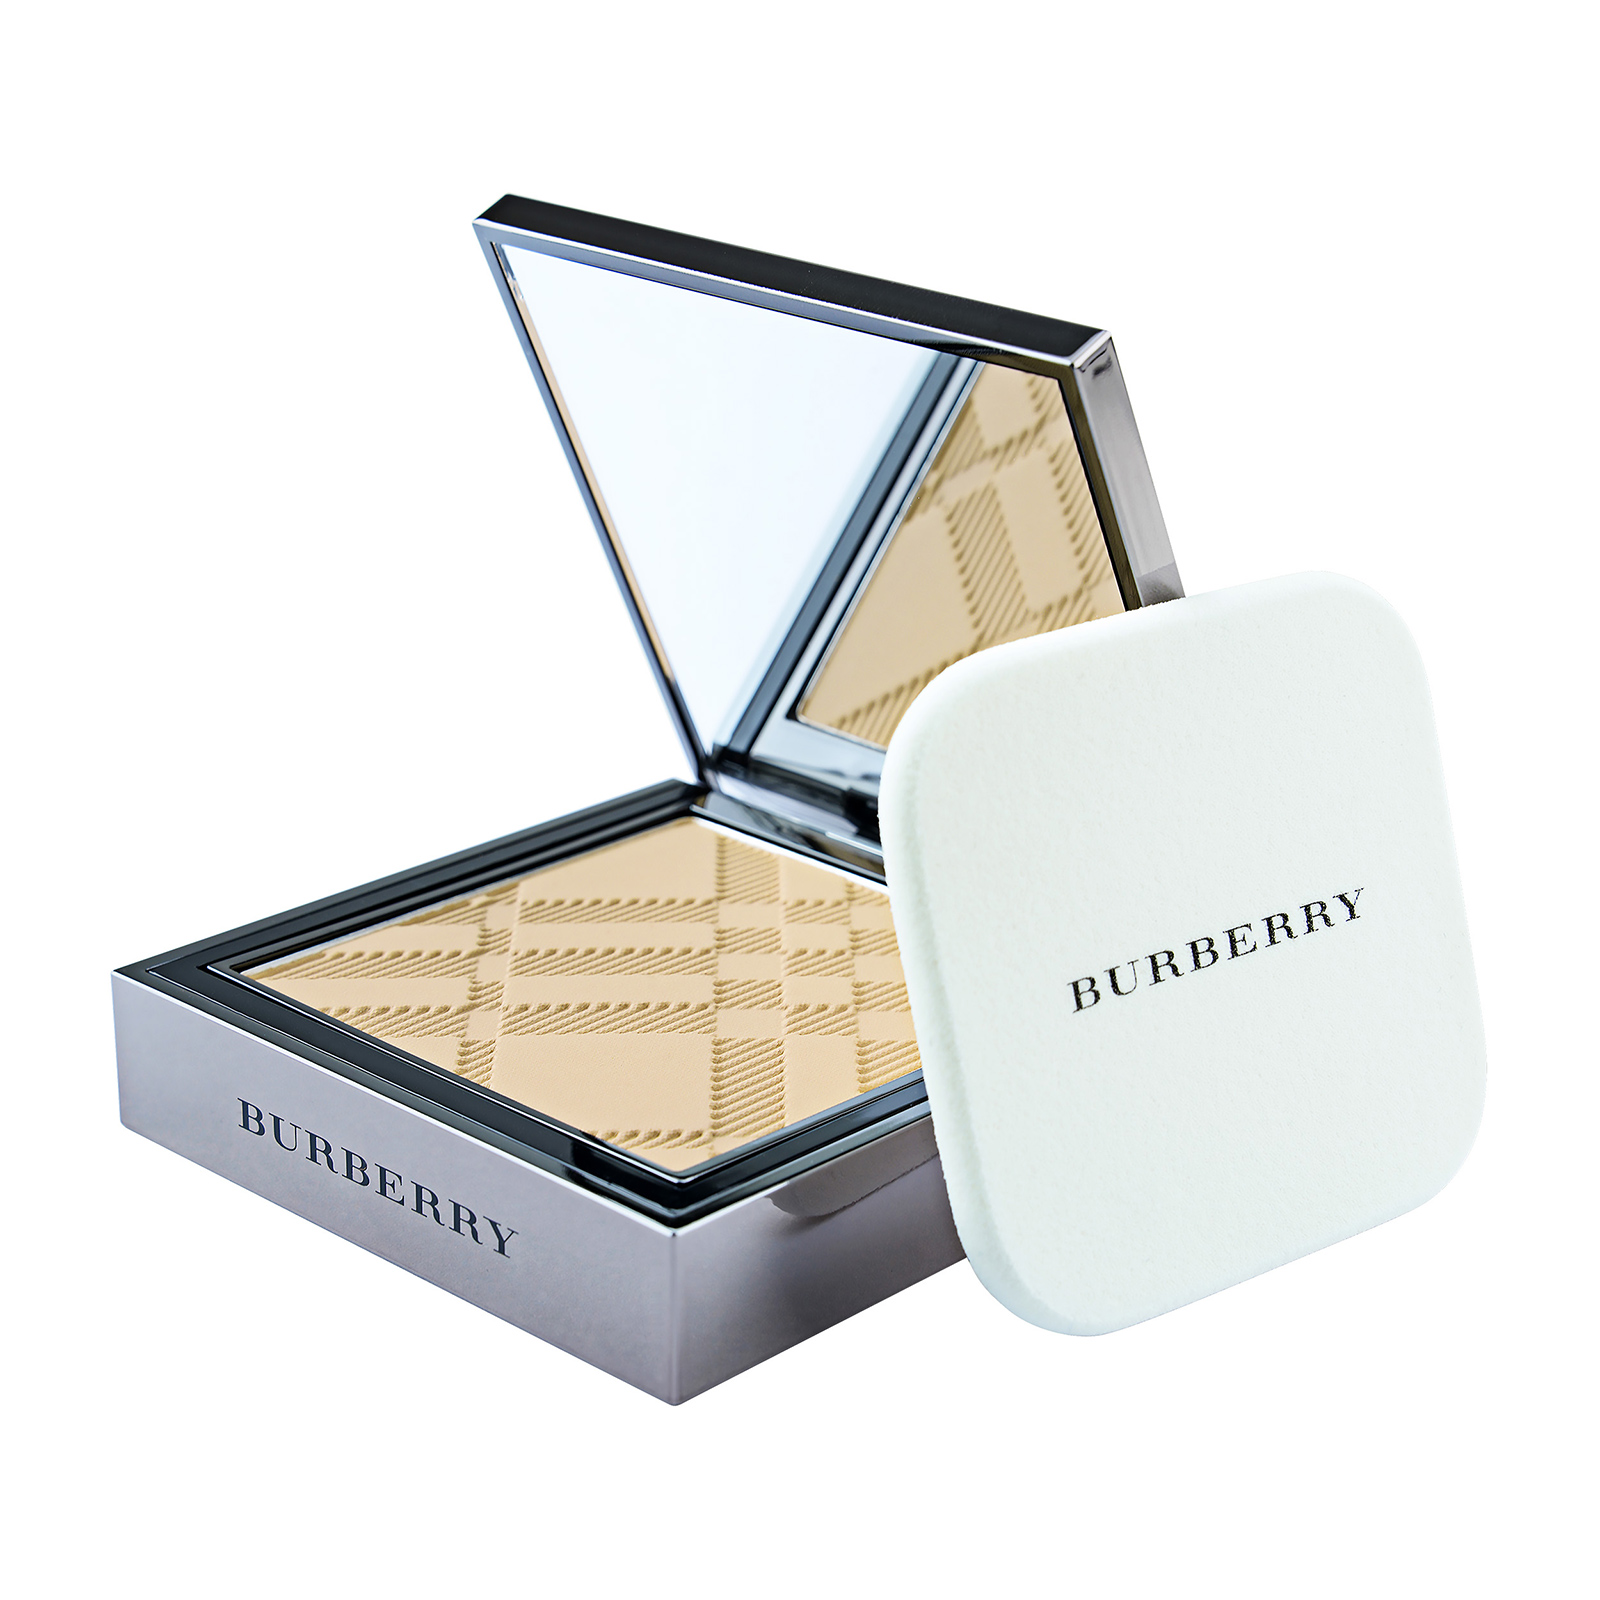 Burberry Fresh Glow Compact Luminous Foundation No. 32 Honey, 0.28oz, 8g